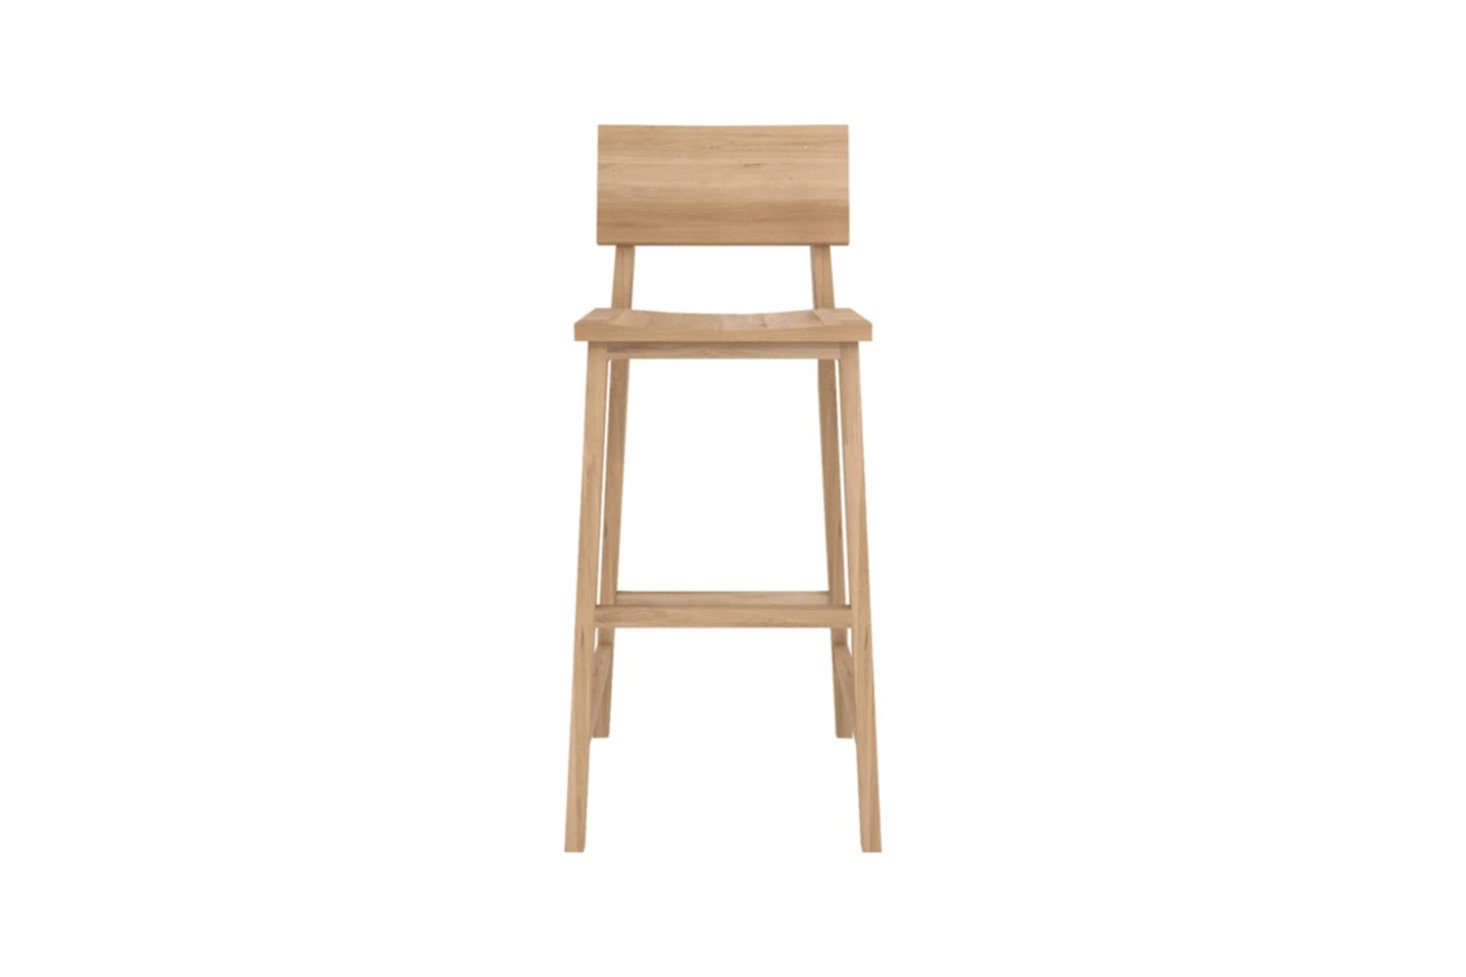 From Ethnicraft, the N4 Counter Stoolin solid oak is $359 at Lekker Home.